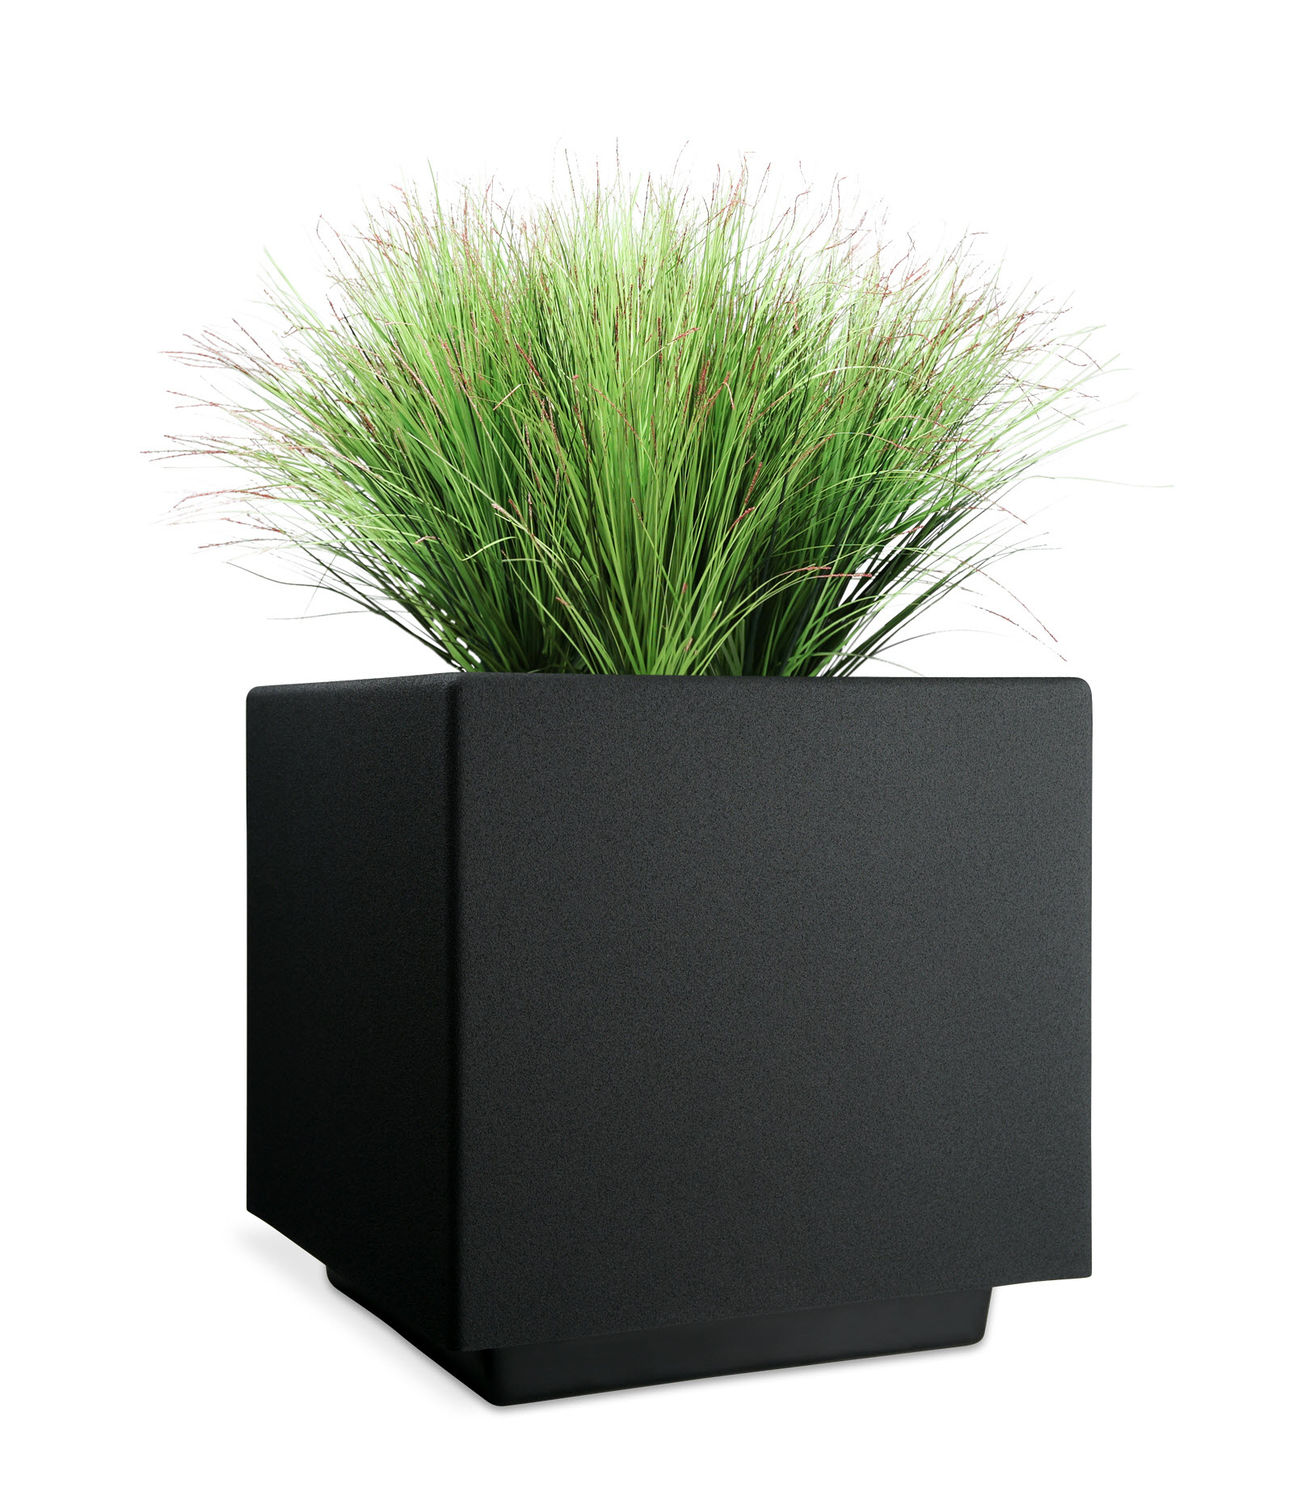 Contemporary Flower Pots Large | Column Planter | Fiberglass Planters